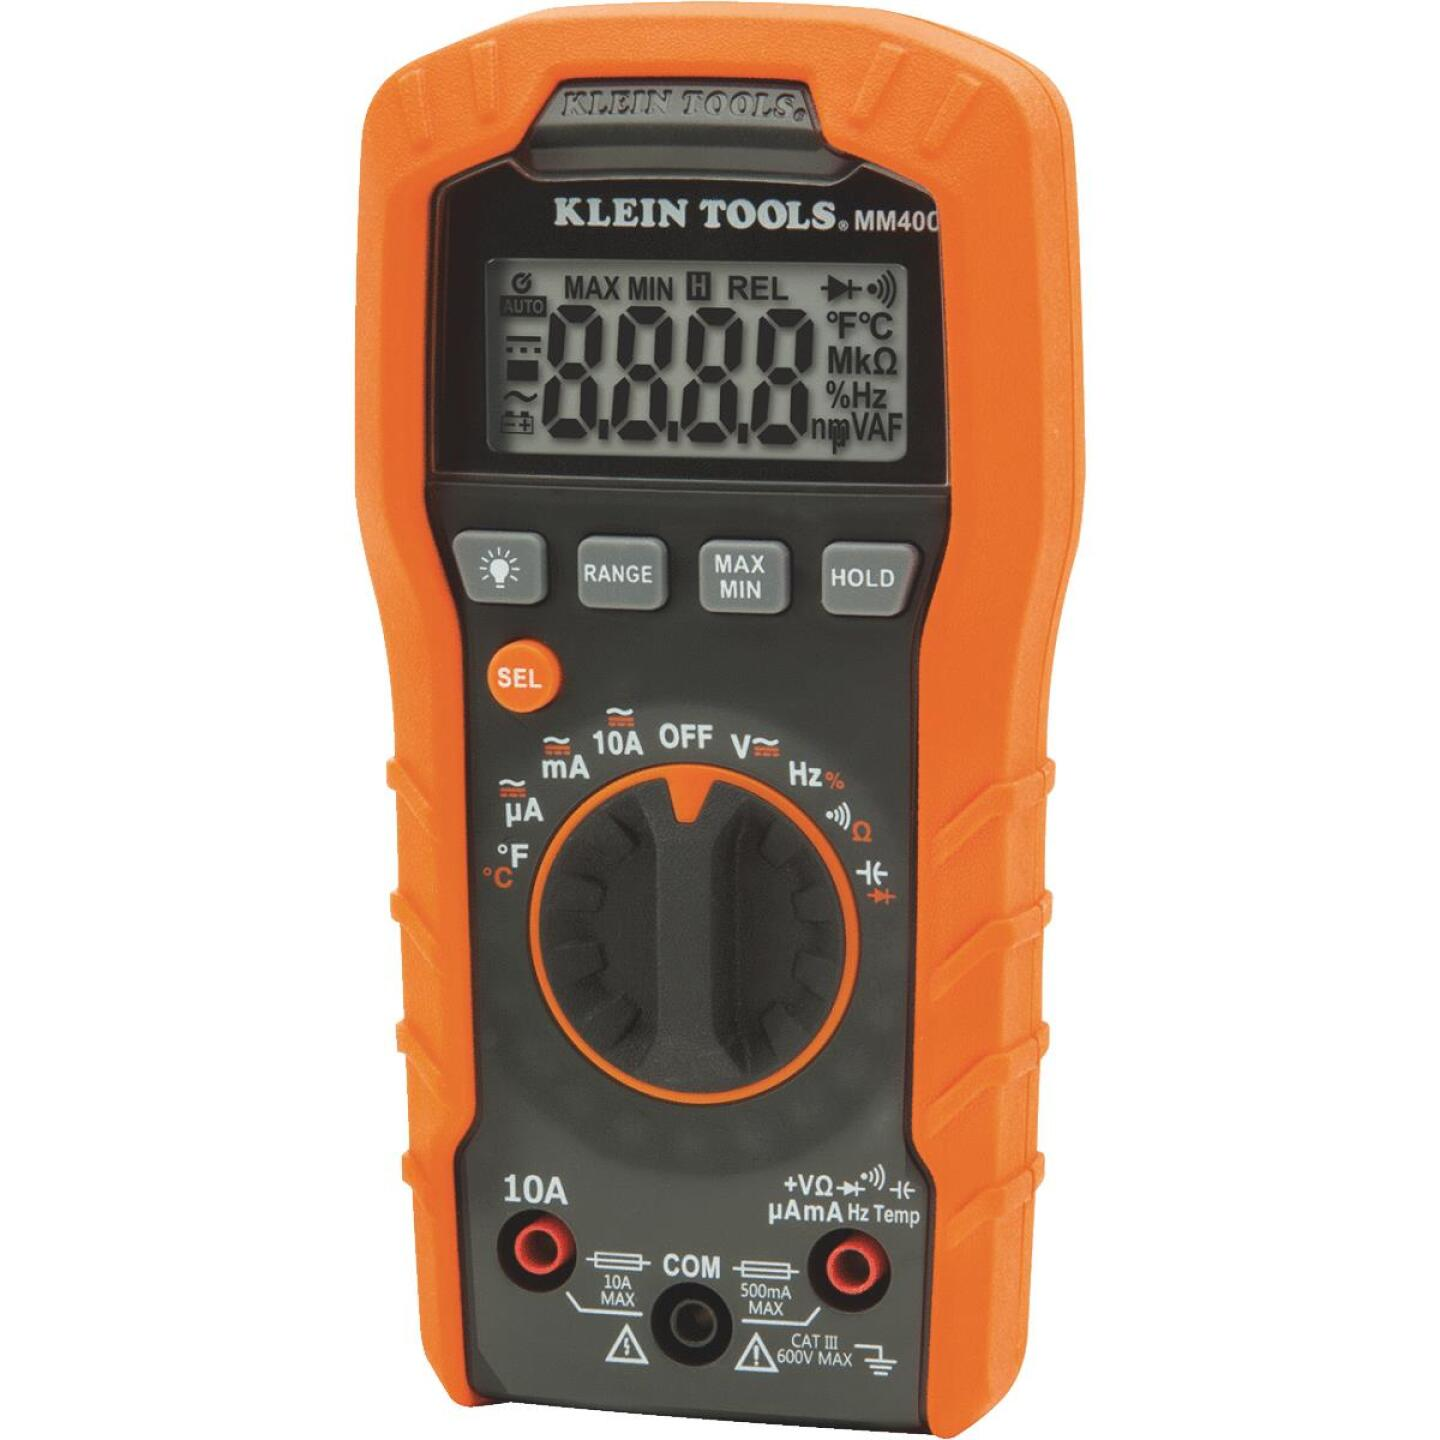 Klein 600V Auto Ranging Digital Multimeter Image 1